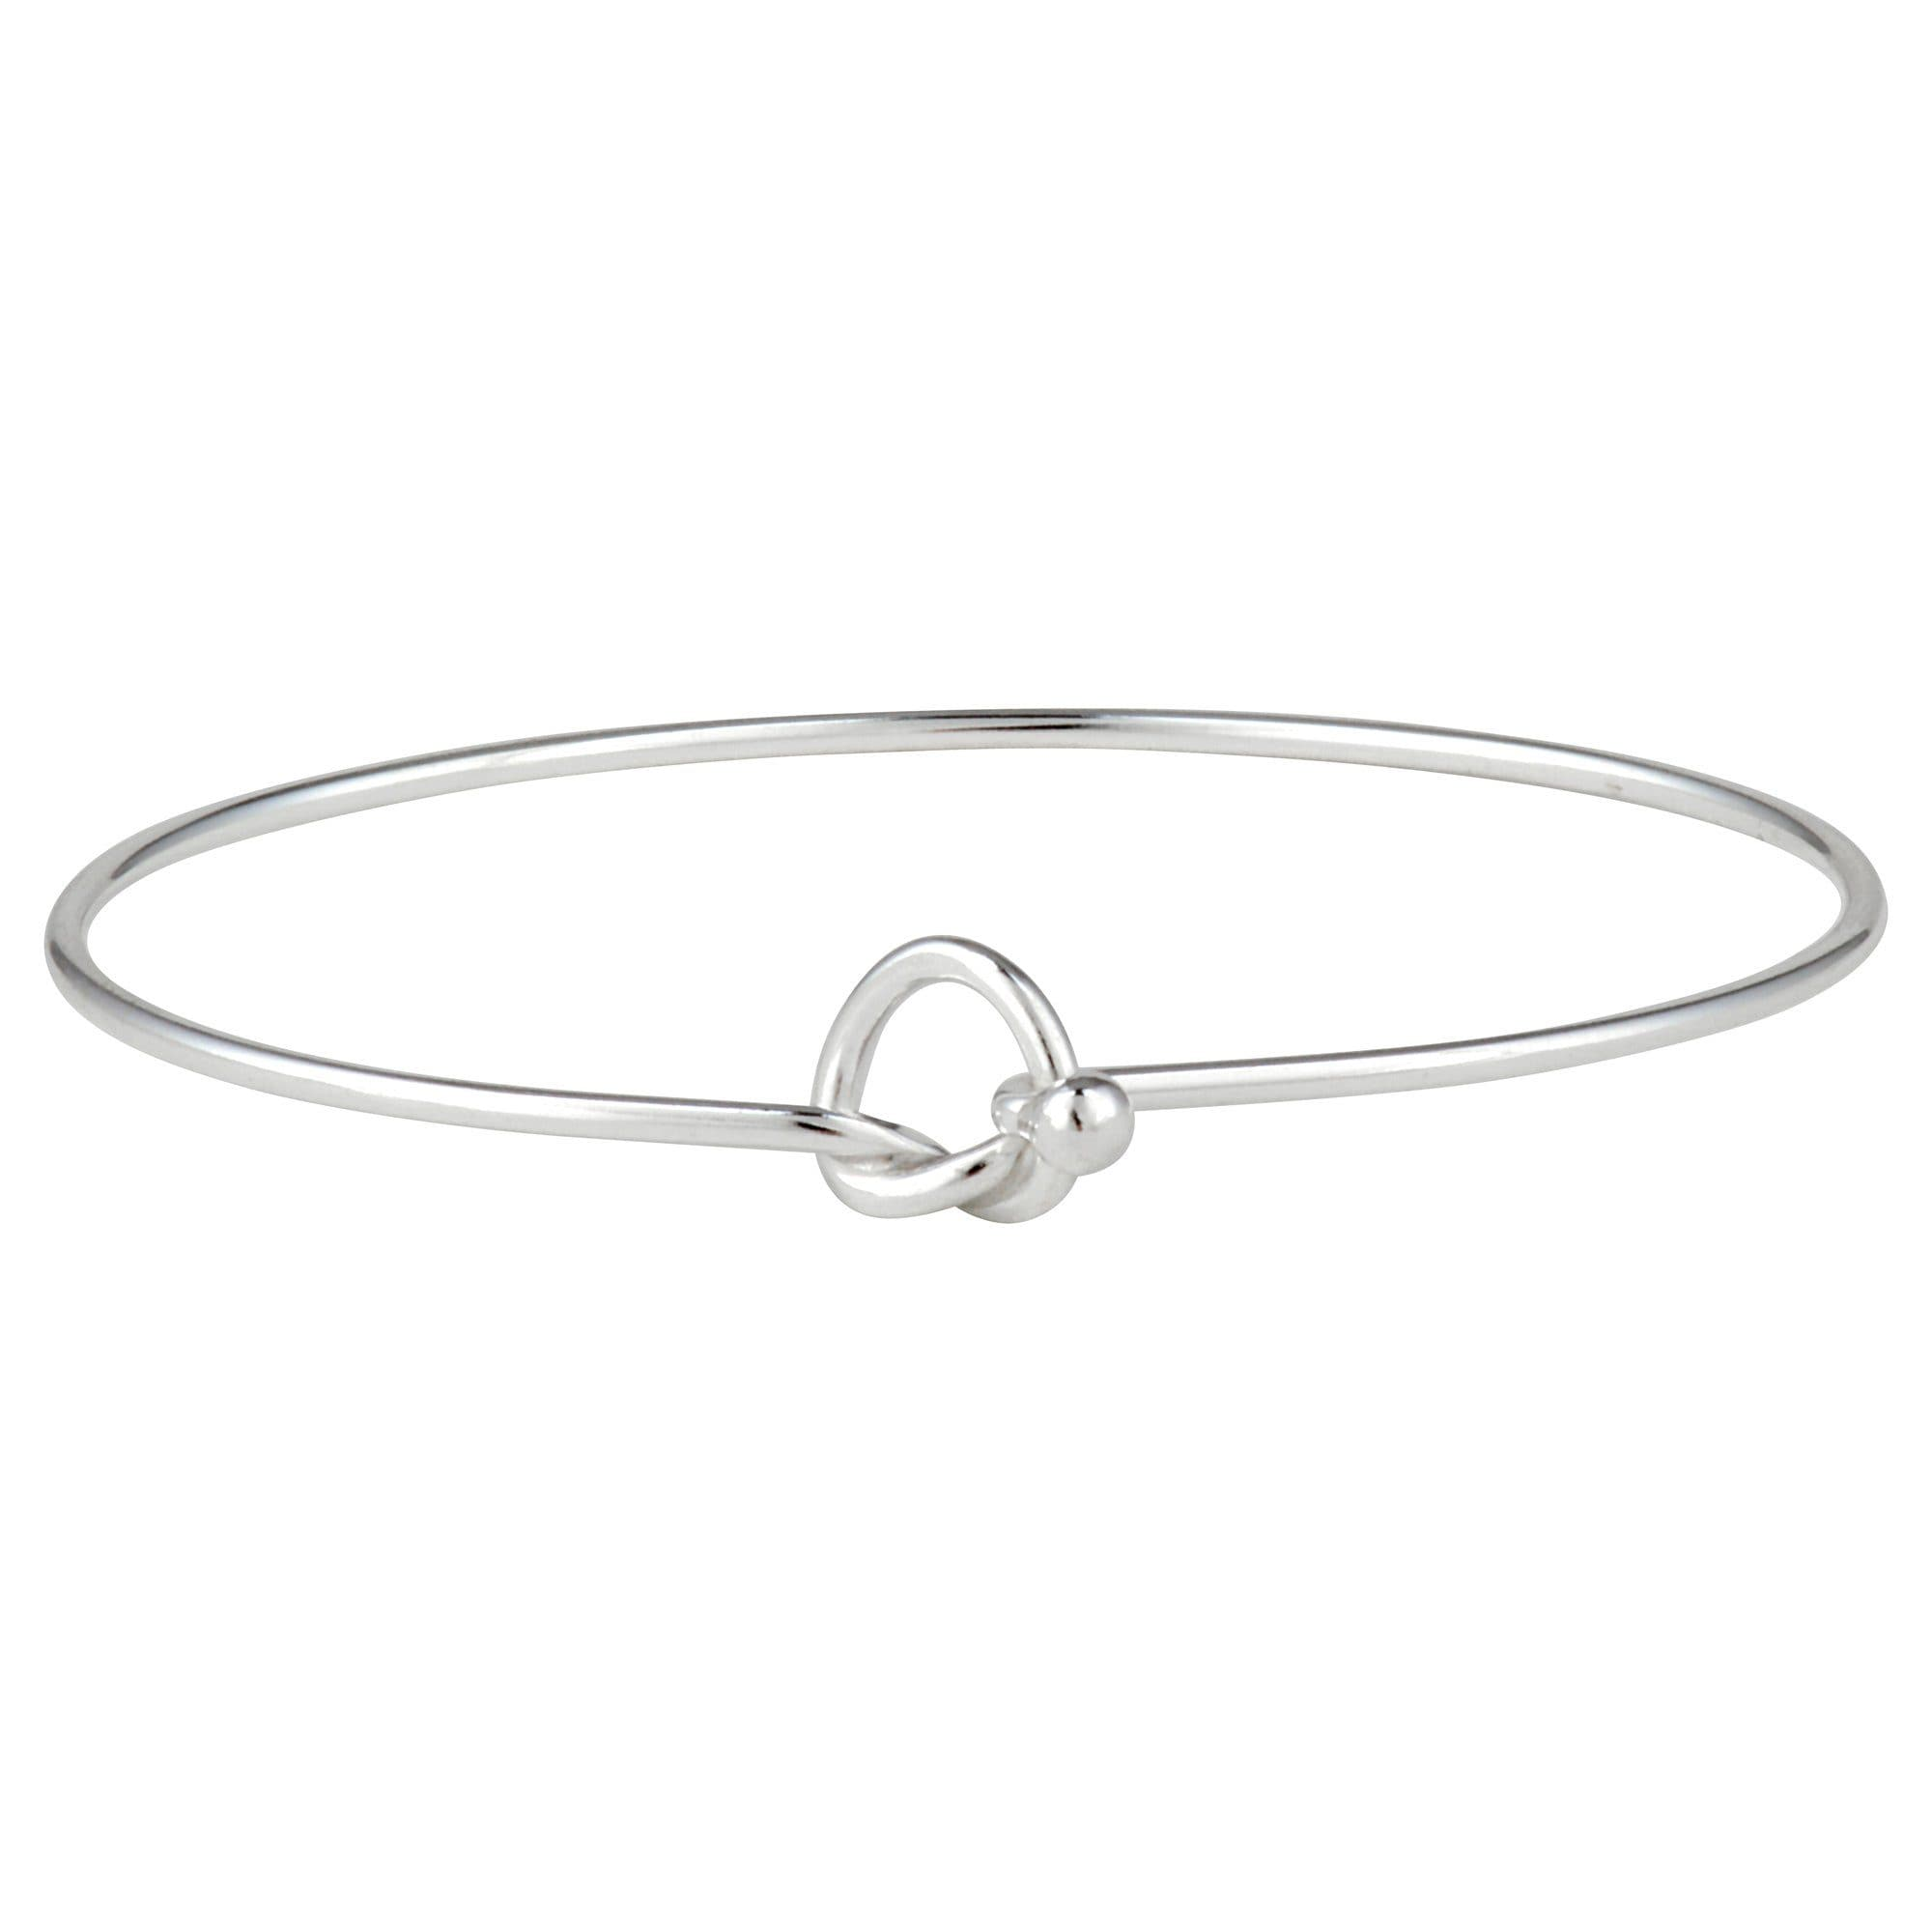 baby en links london bangles classic bangle of bracelet silver sterling gb hires expandable plain bracelets